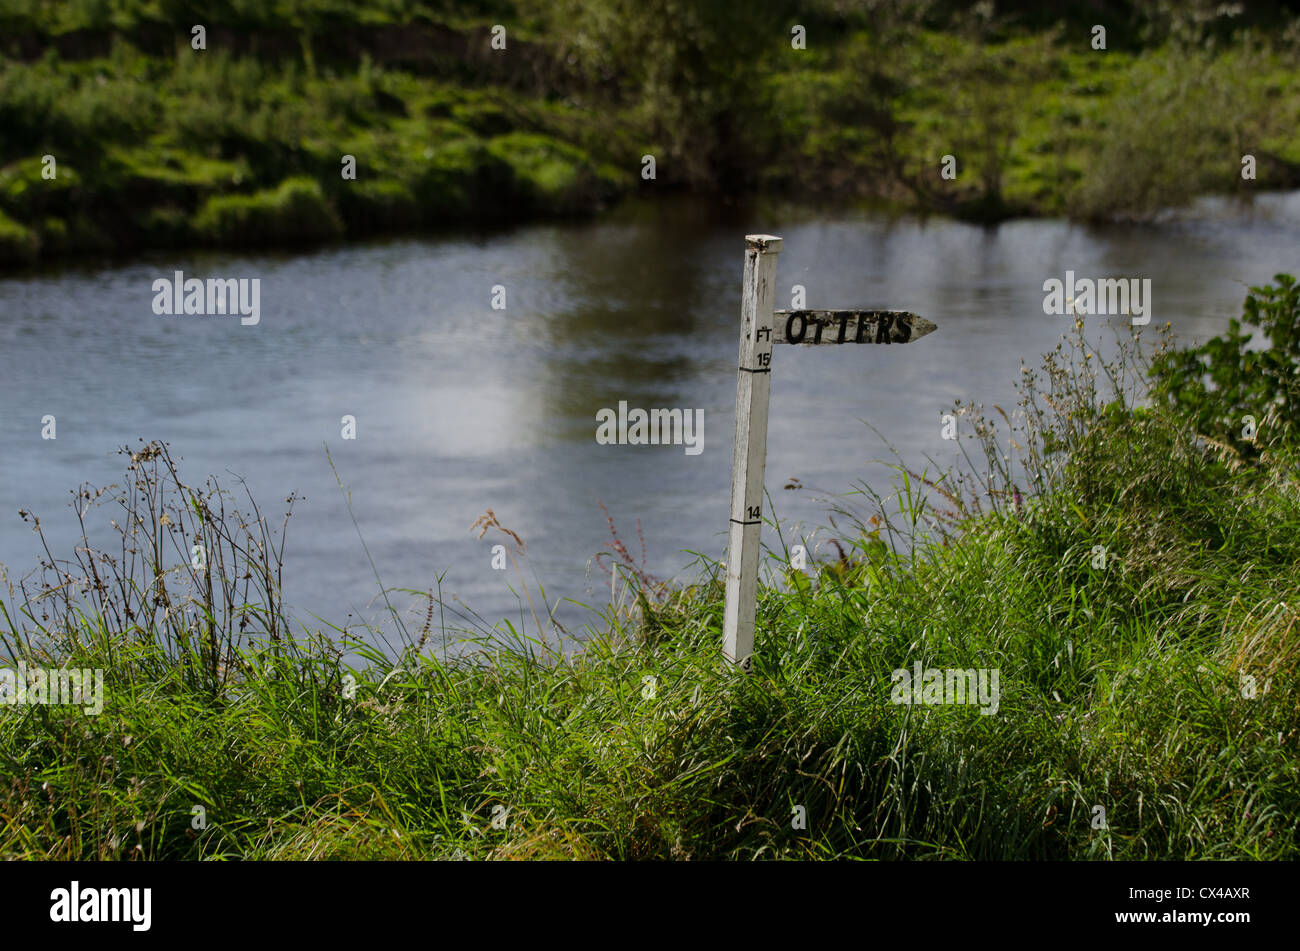 A sign for 'Otters' on the river bank of the Wye, in Witney on Wye. - Stock Image